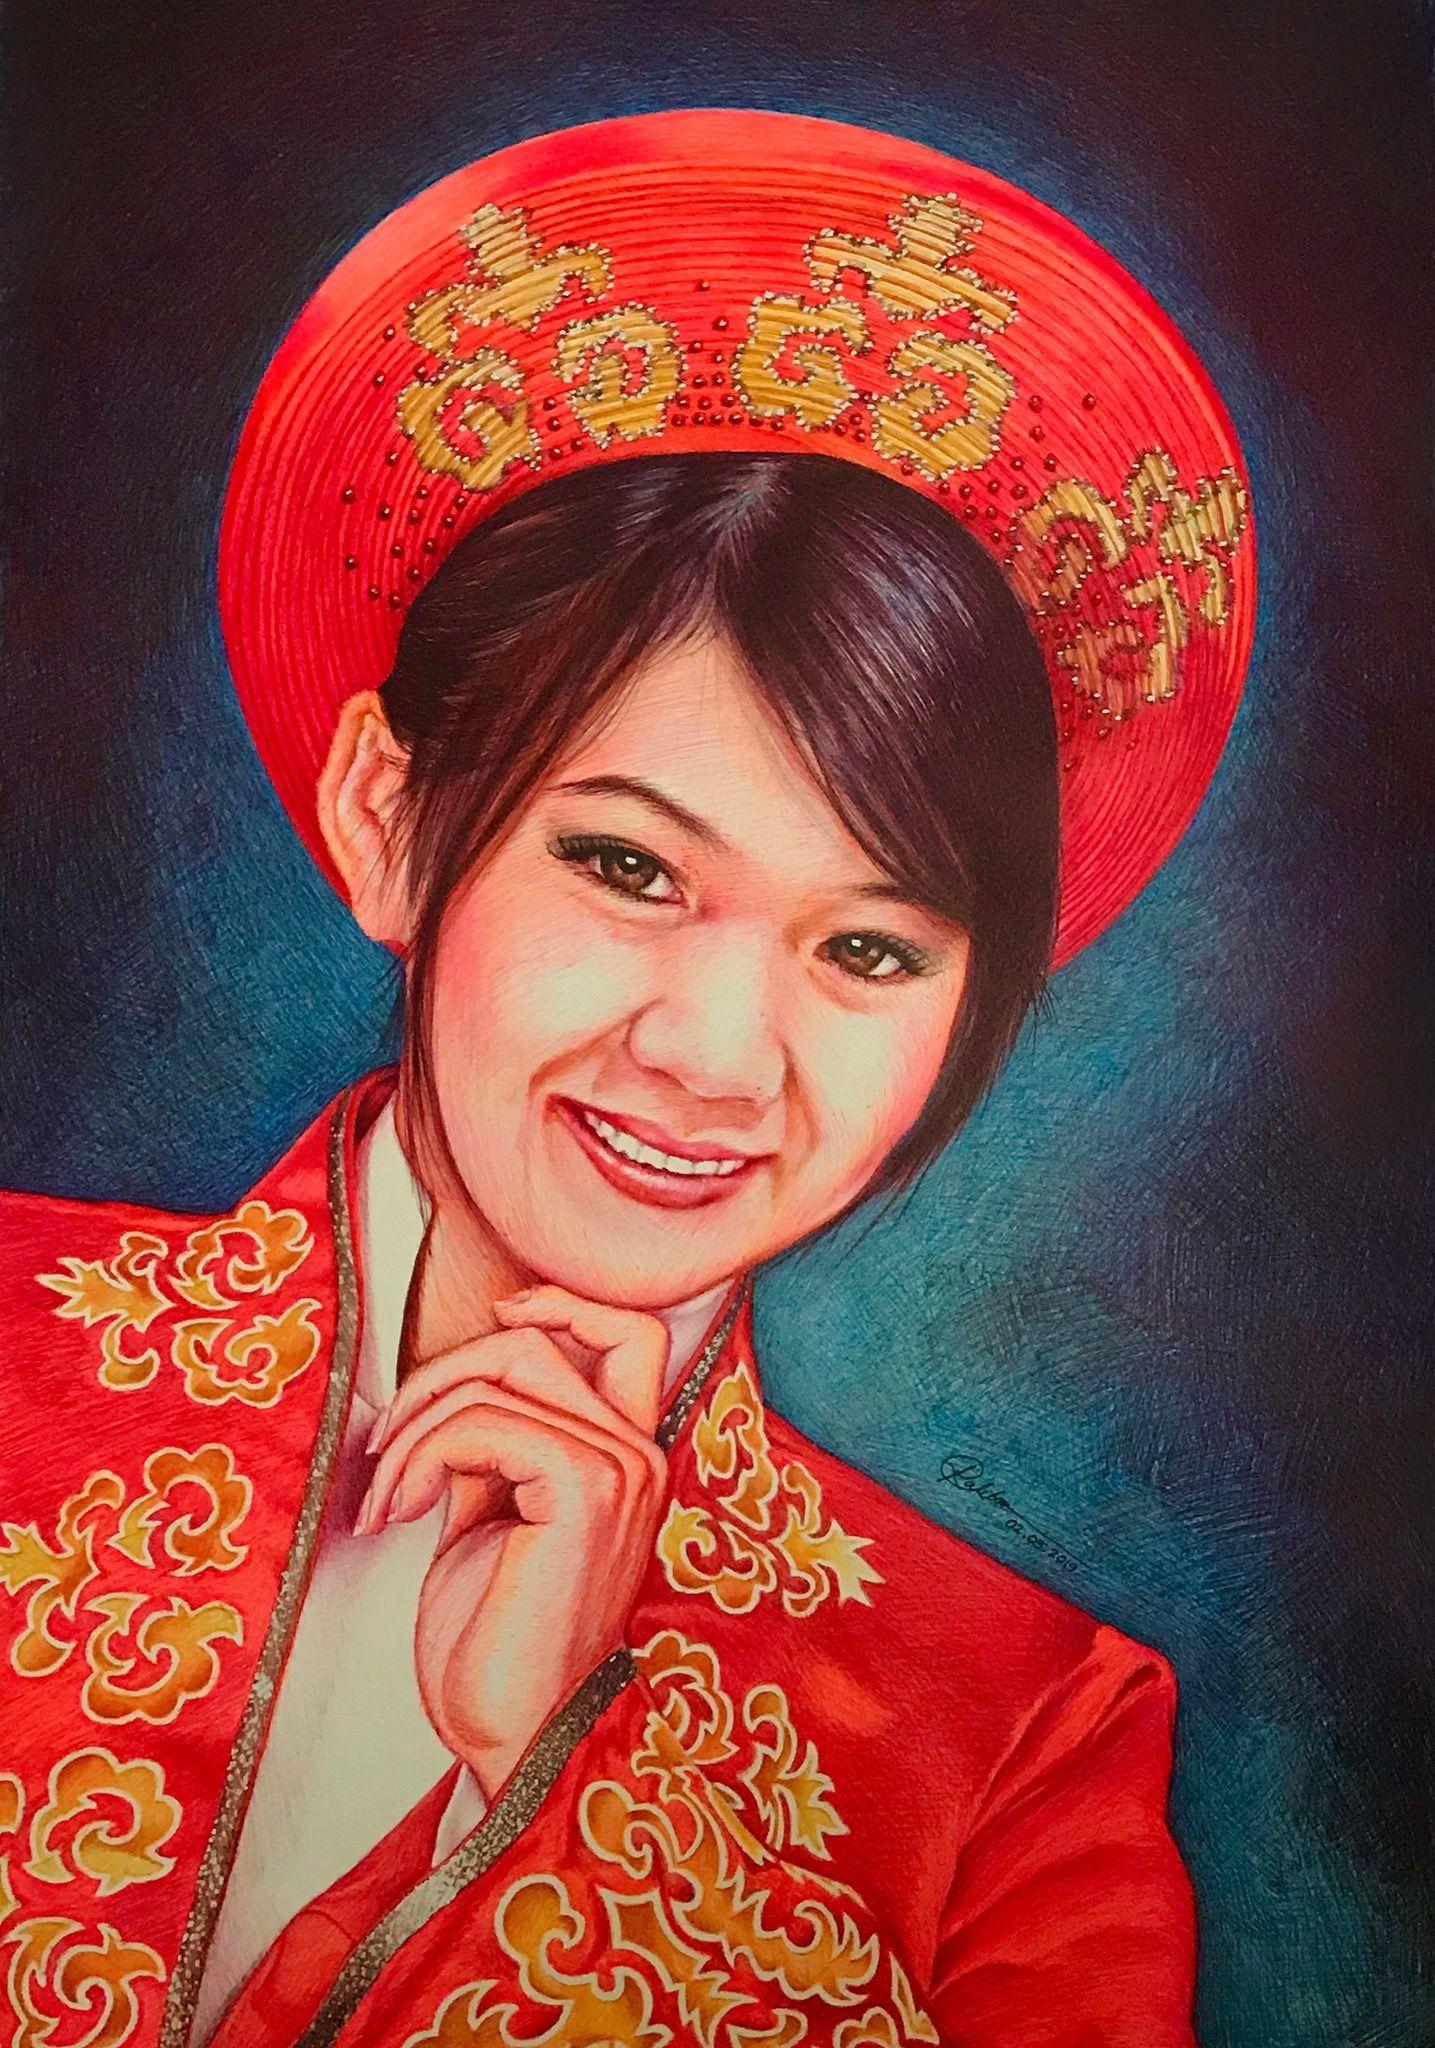 My wife Marie, in very striking red Vietnamese traditional